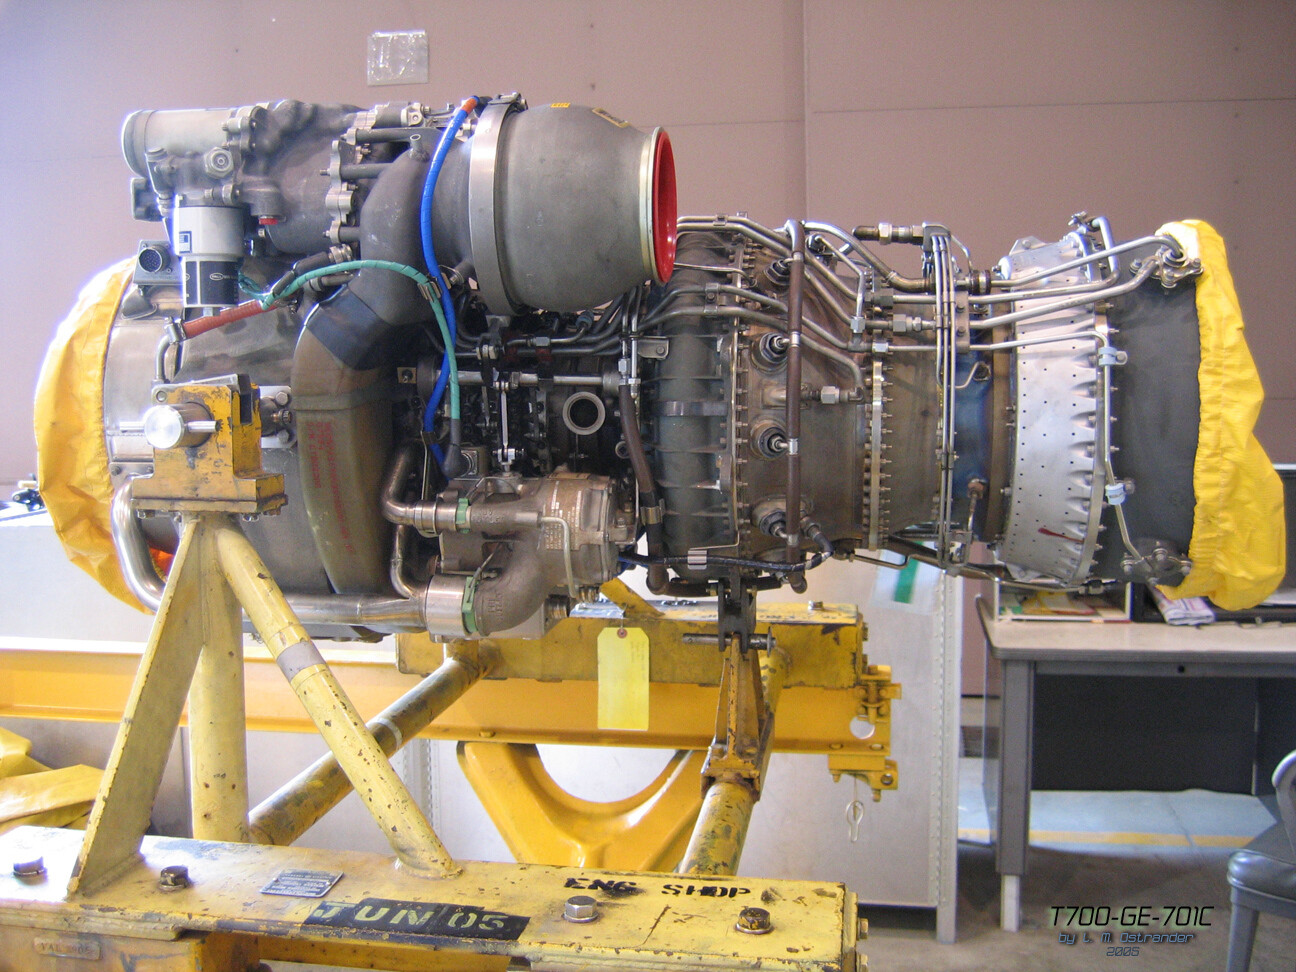 SIKORSKY UH-60 BLACKHAWK GENERAL ELECTRIC T700 TURBINE JET ENGINE *** NO INTERNATIONAL OR THIRD-PARTY SHIPPING ***